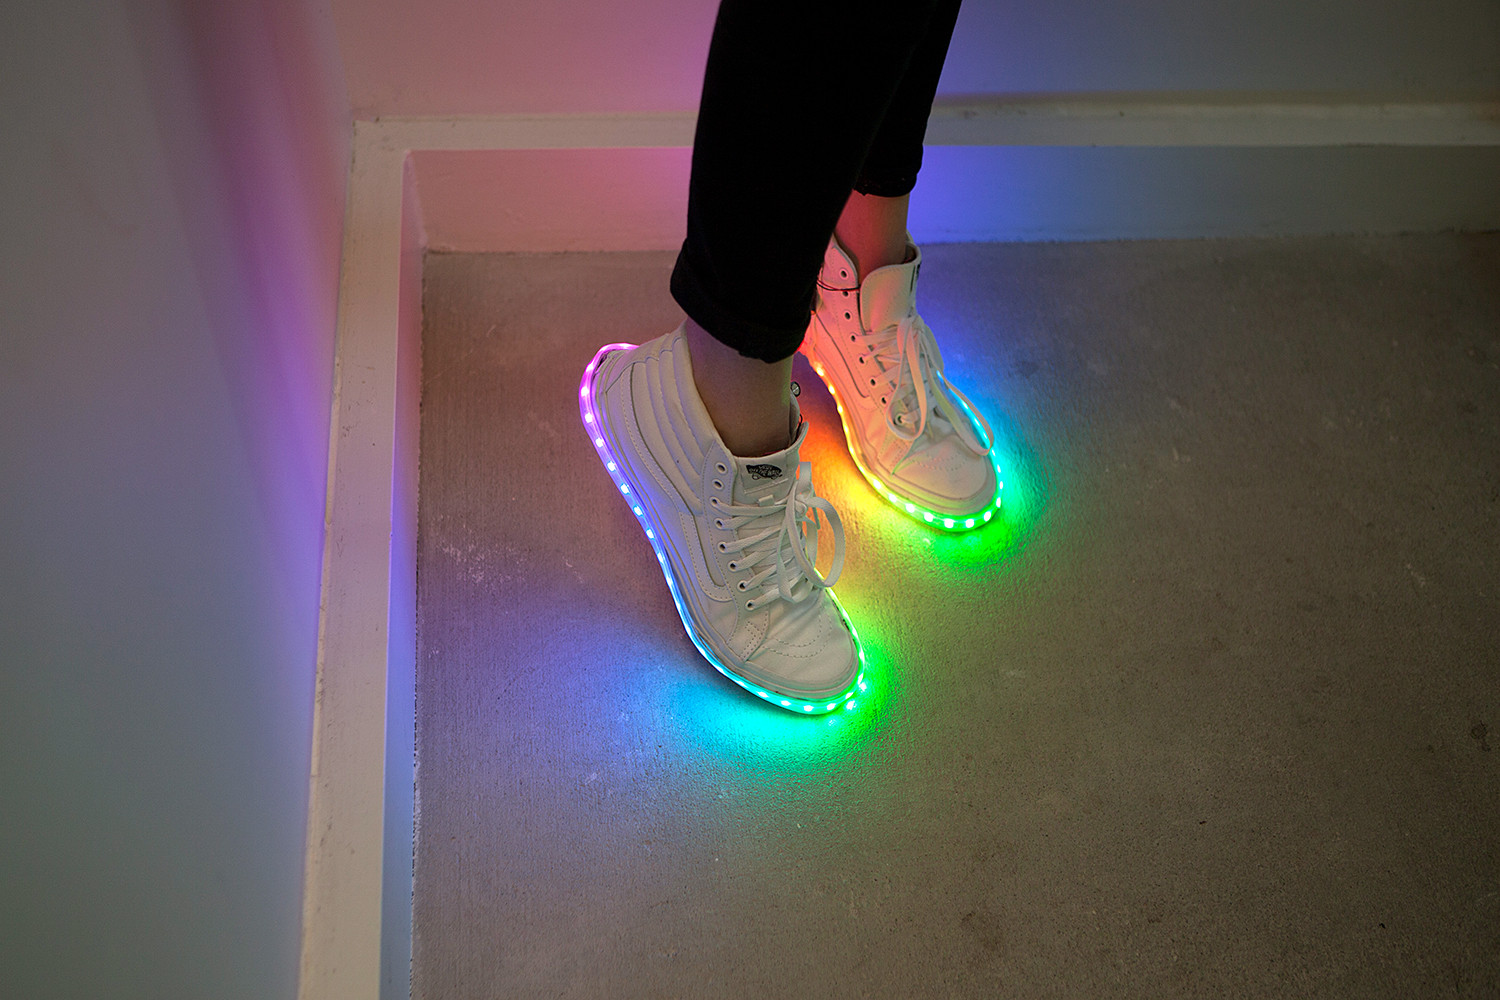 Best ideas about DIY Light Up Shoes . Save or Pin DIY Light Up Shoes learn sparkfun Now.